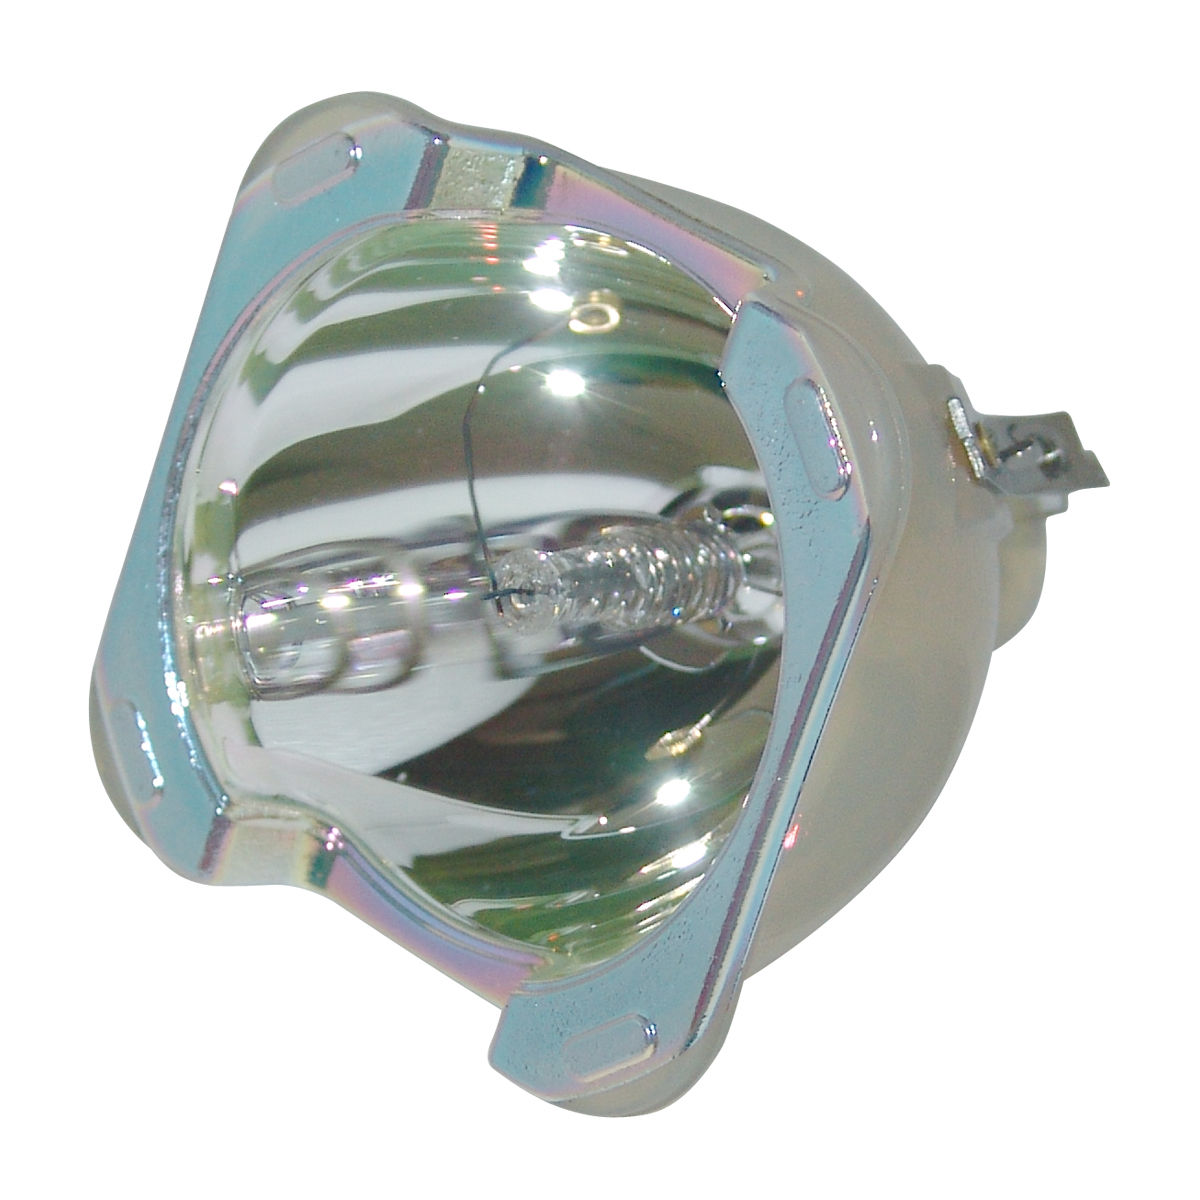 Compatible Bare Bulb 311-9421 725-10127 X415G for DELL 7609WU Projector Lamp Bulb without housing т��ршер аврора шебби 10127 1t